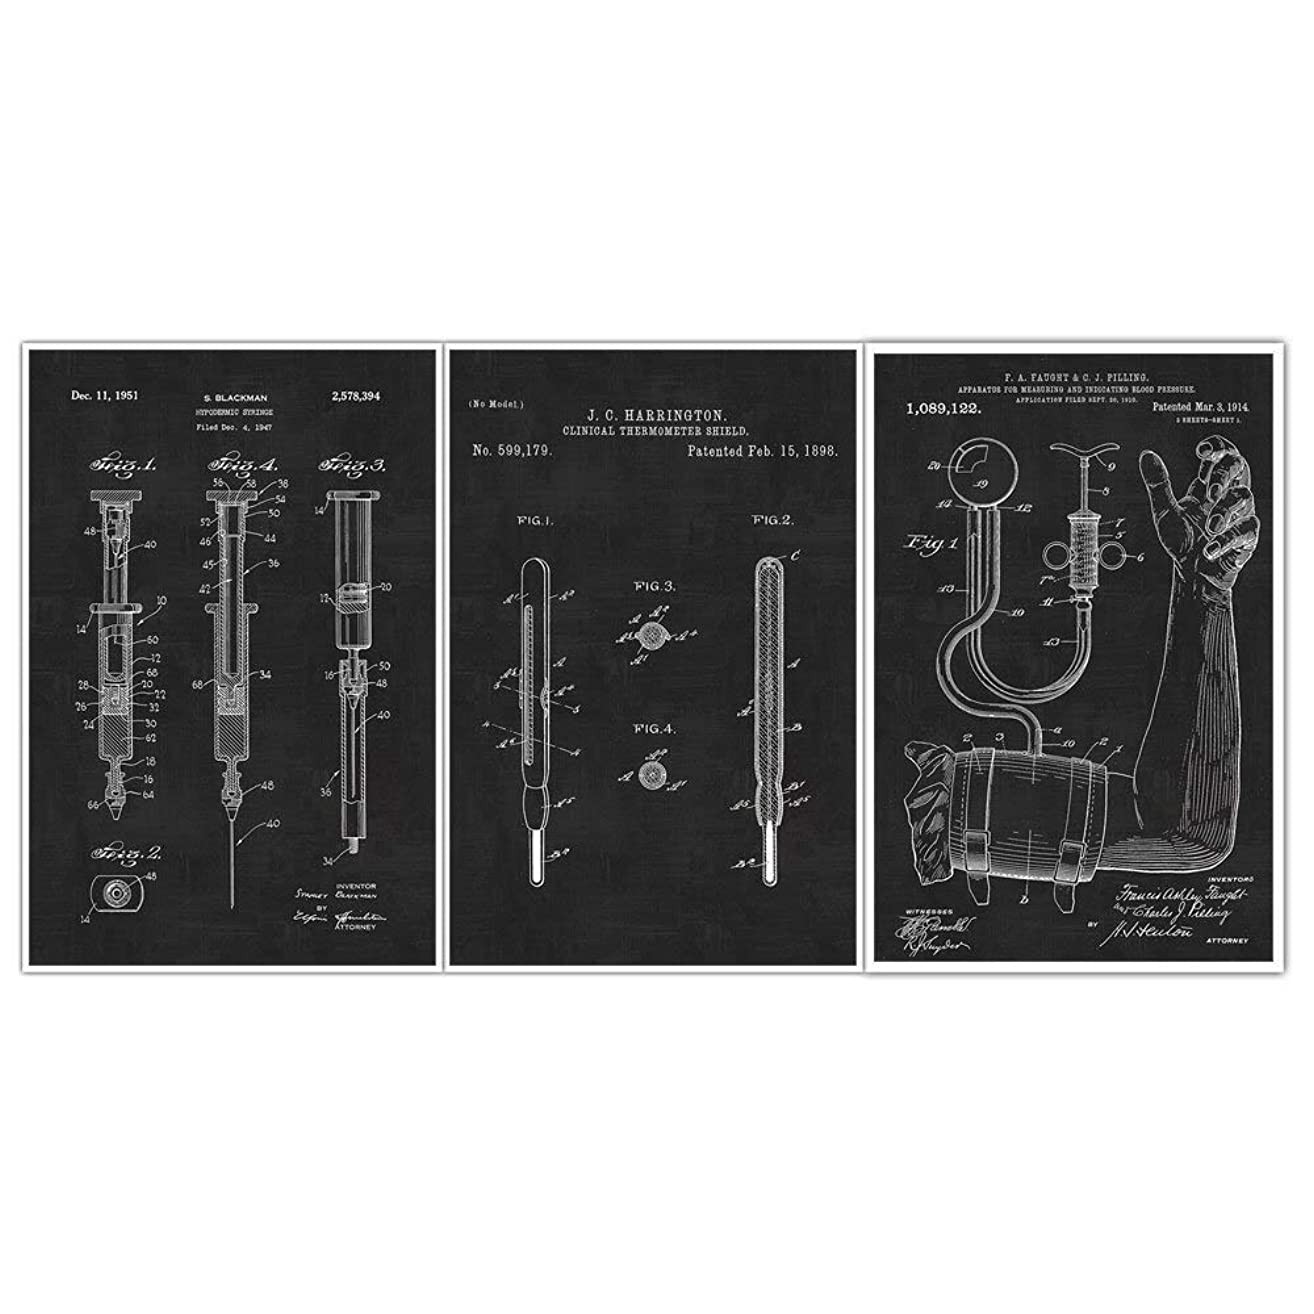 Blood Pressure Cuff, Syringe, Thermometer Blueprint Patent Print Poster